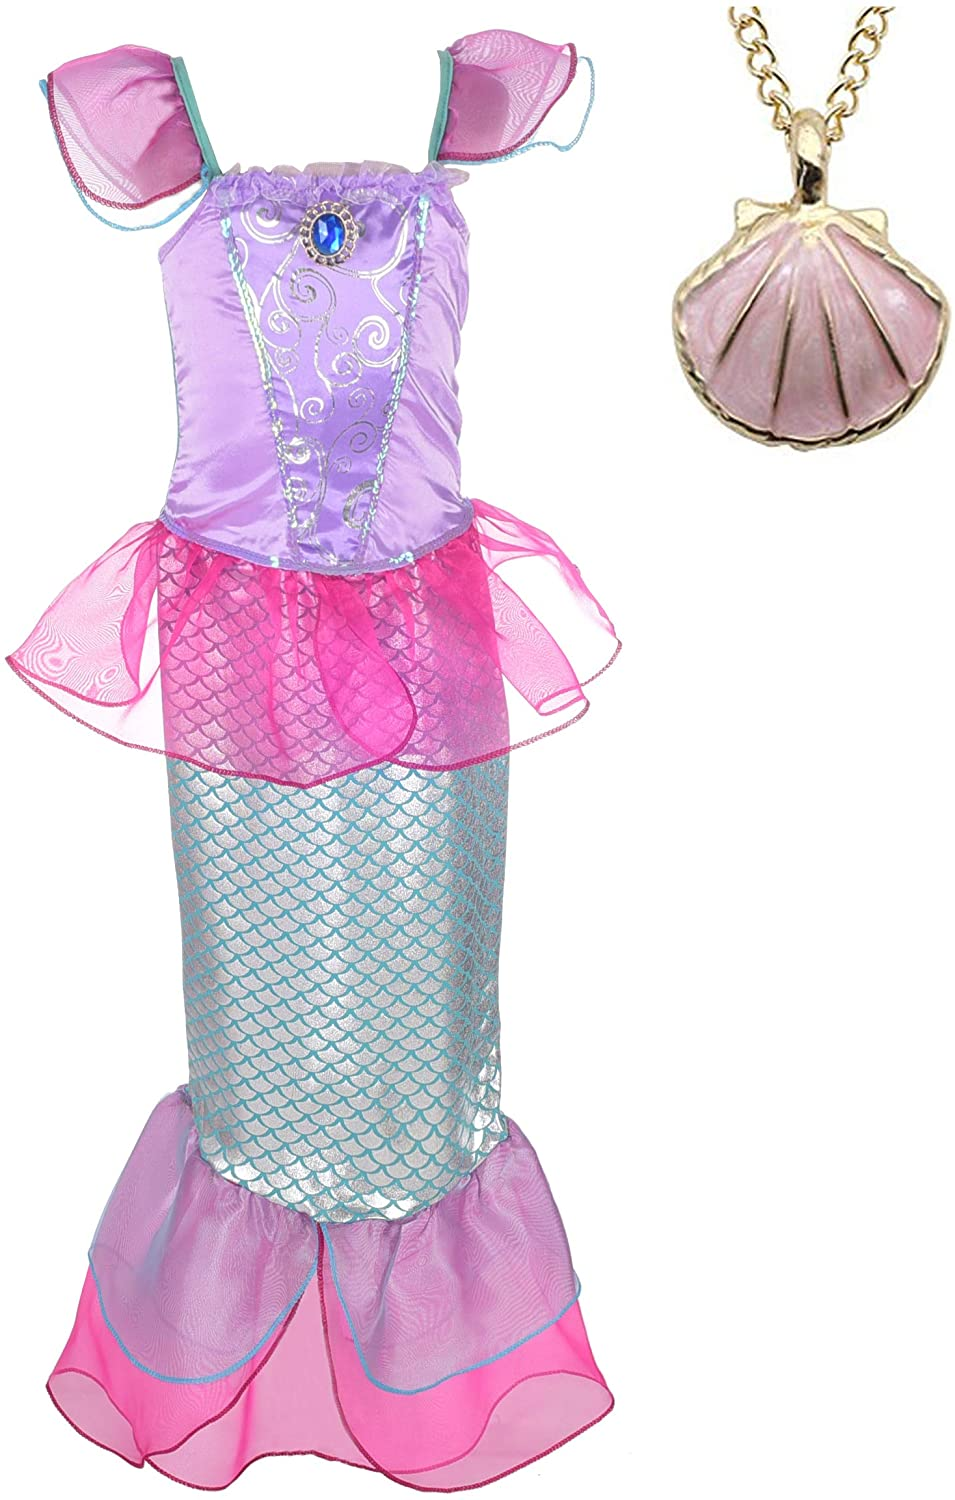 Lito Angels Girls Princess Dress Up Mermaid Costume Fairy Tales Mermaid Outfit with Necklace